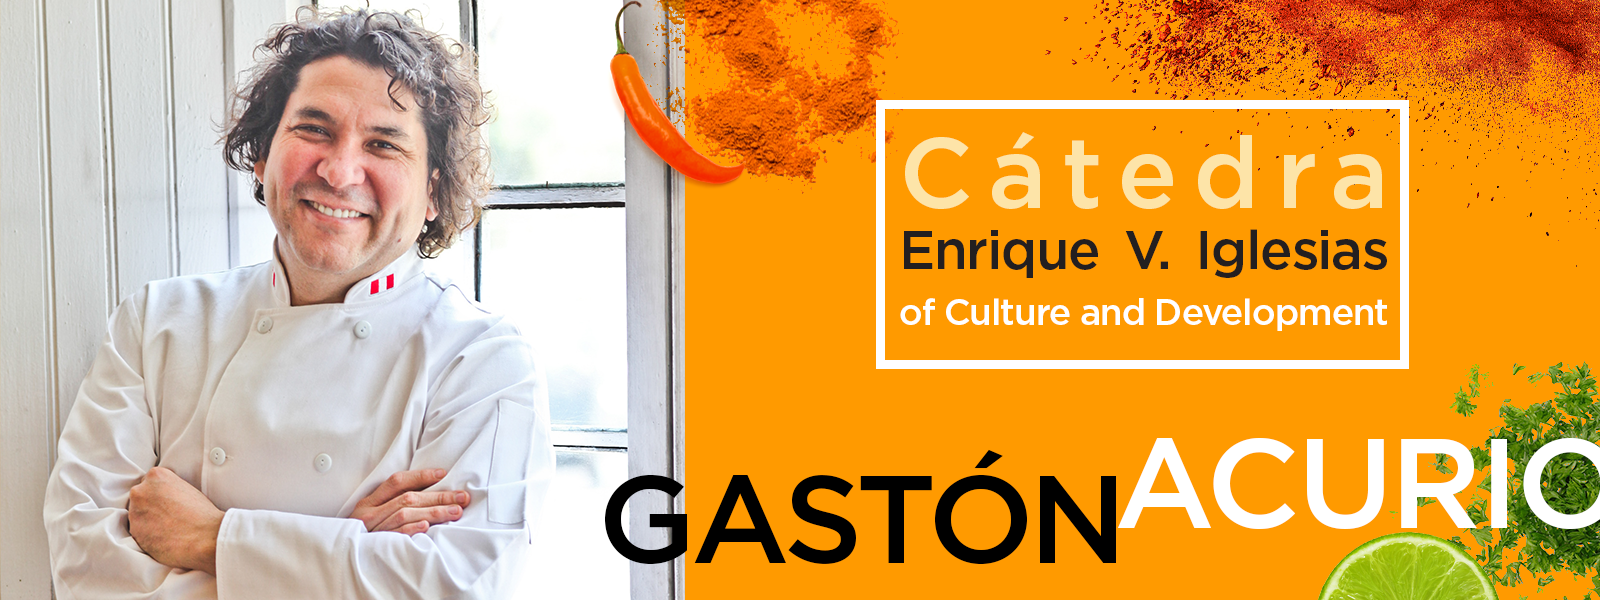 Gastón Acurio at the Cátedra Enrique V. Iglesias of Culture and Development